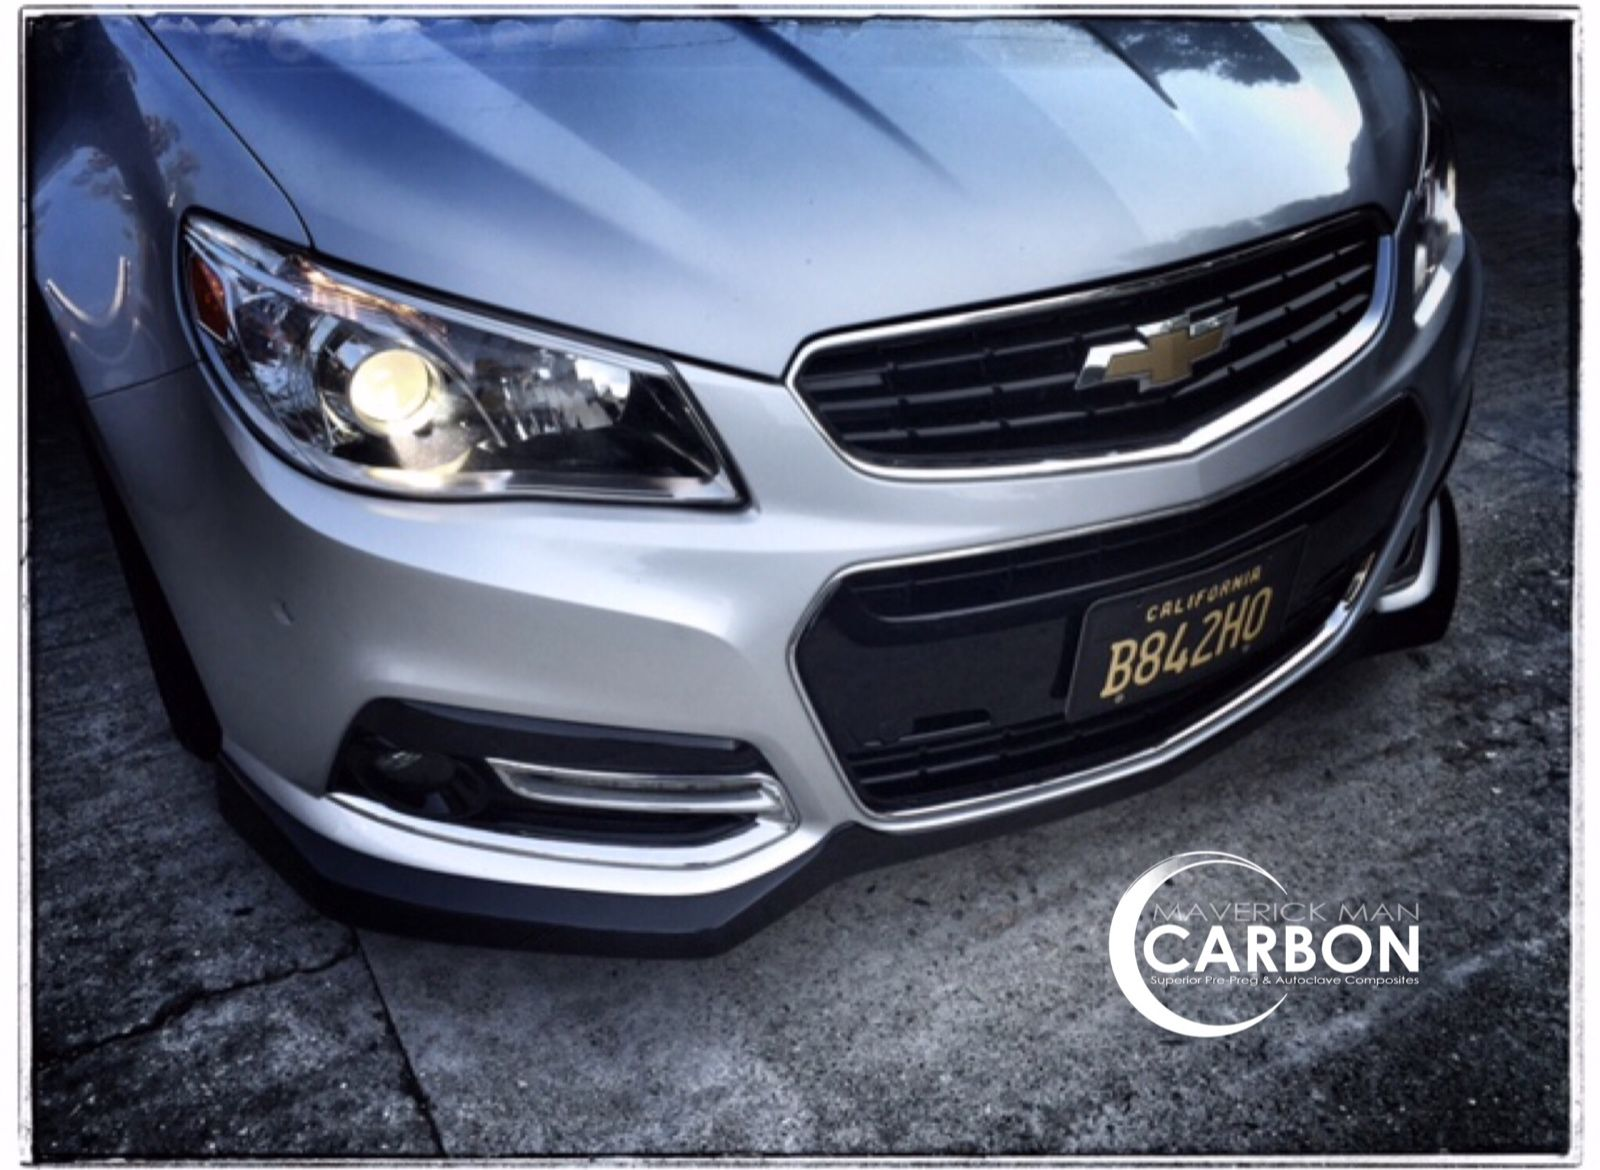 Another happy chevy ss owner with a maverick man carbon front lip